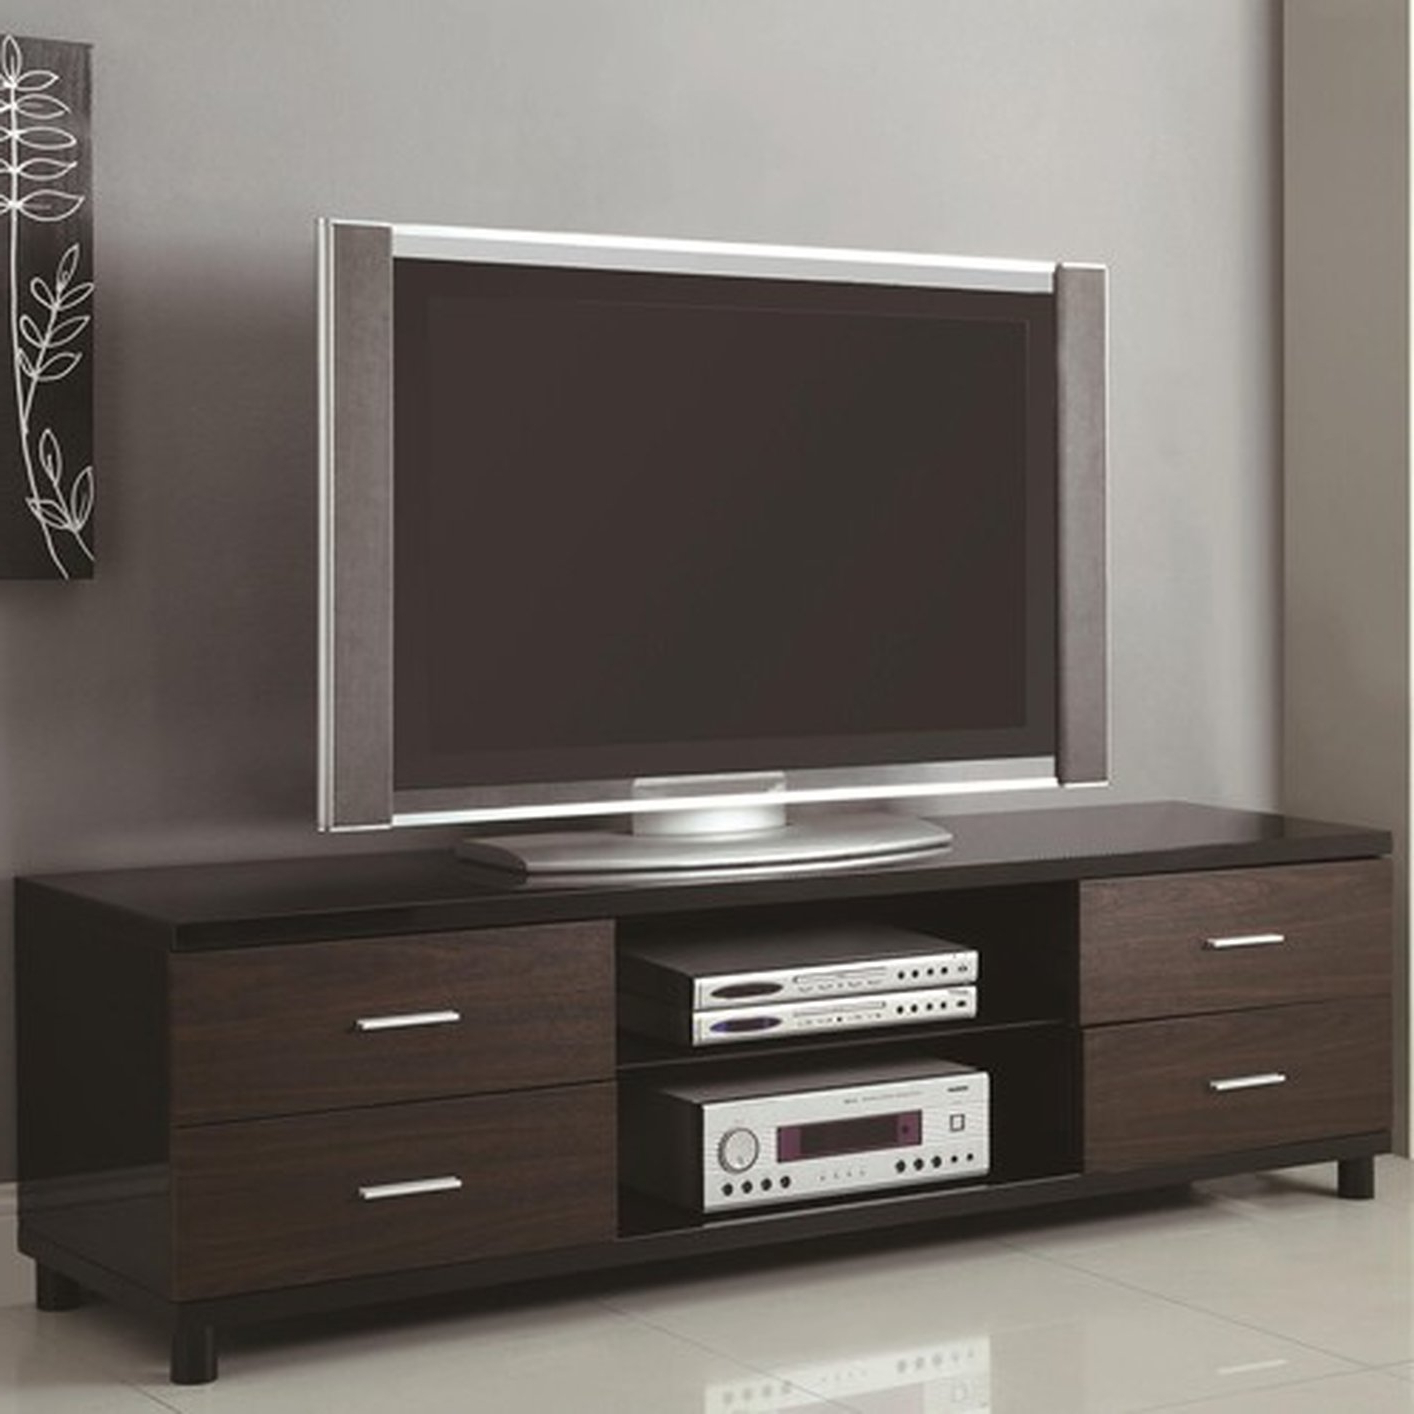 Widely Used Wooden Tv Cabinets With Brown Wood Tv Stand – Steal A Sofa Furniture Outlet Los Angeles Ca (View 18 of 20)